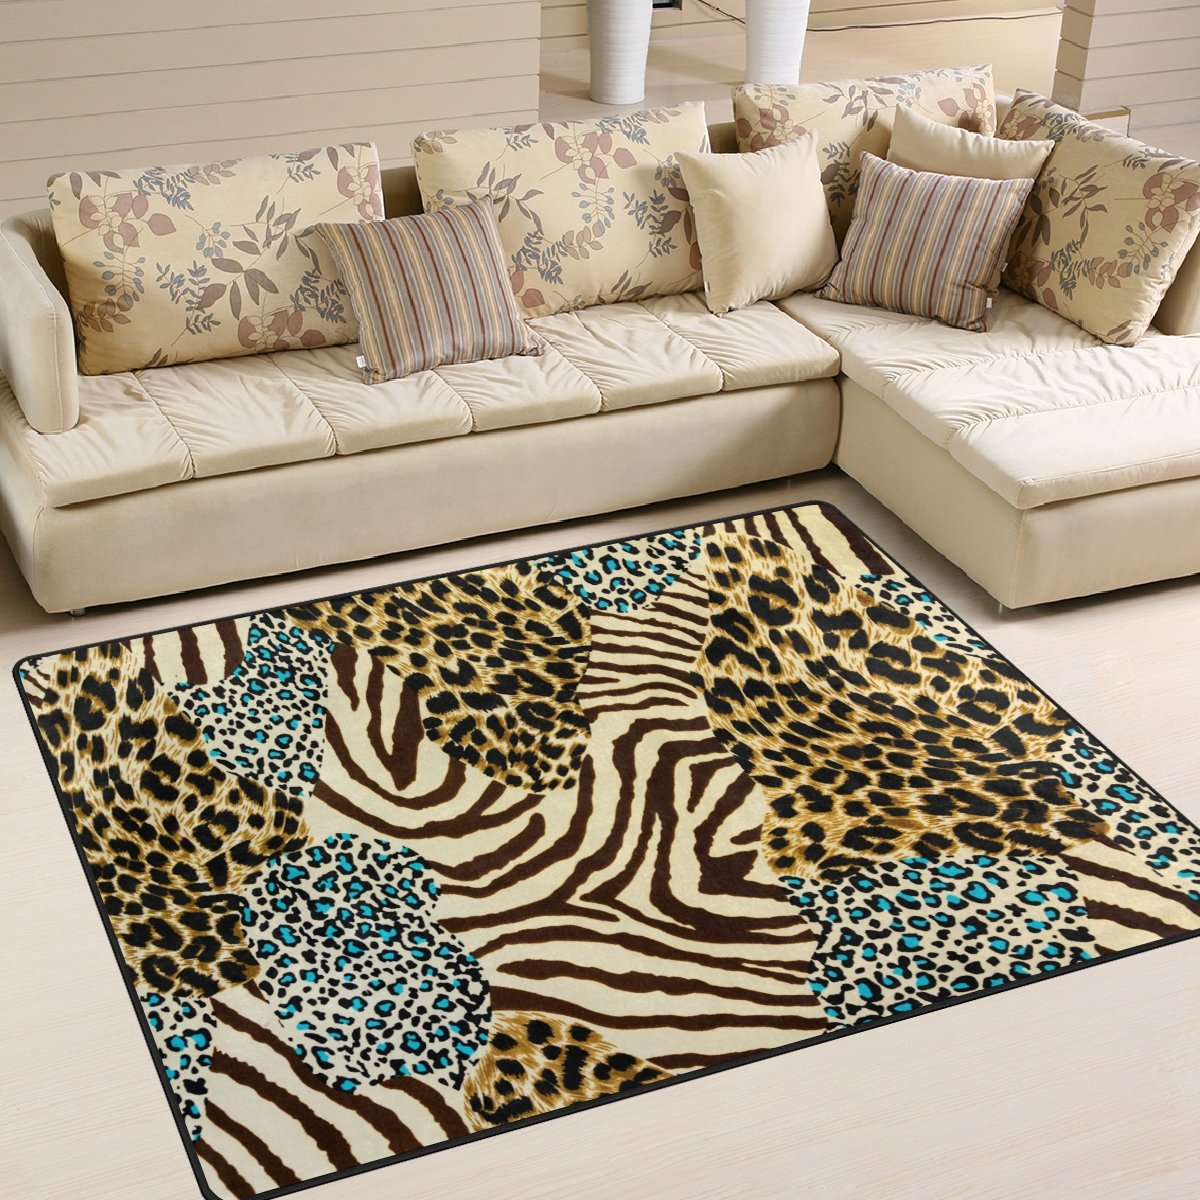 leopard print rug living room alaza animal zebra leopard print area rug rugs for living 19554